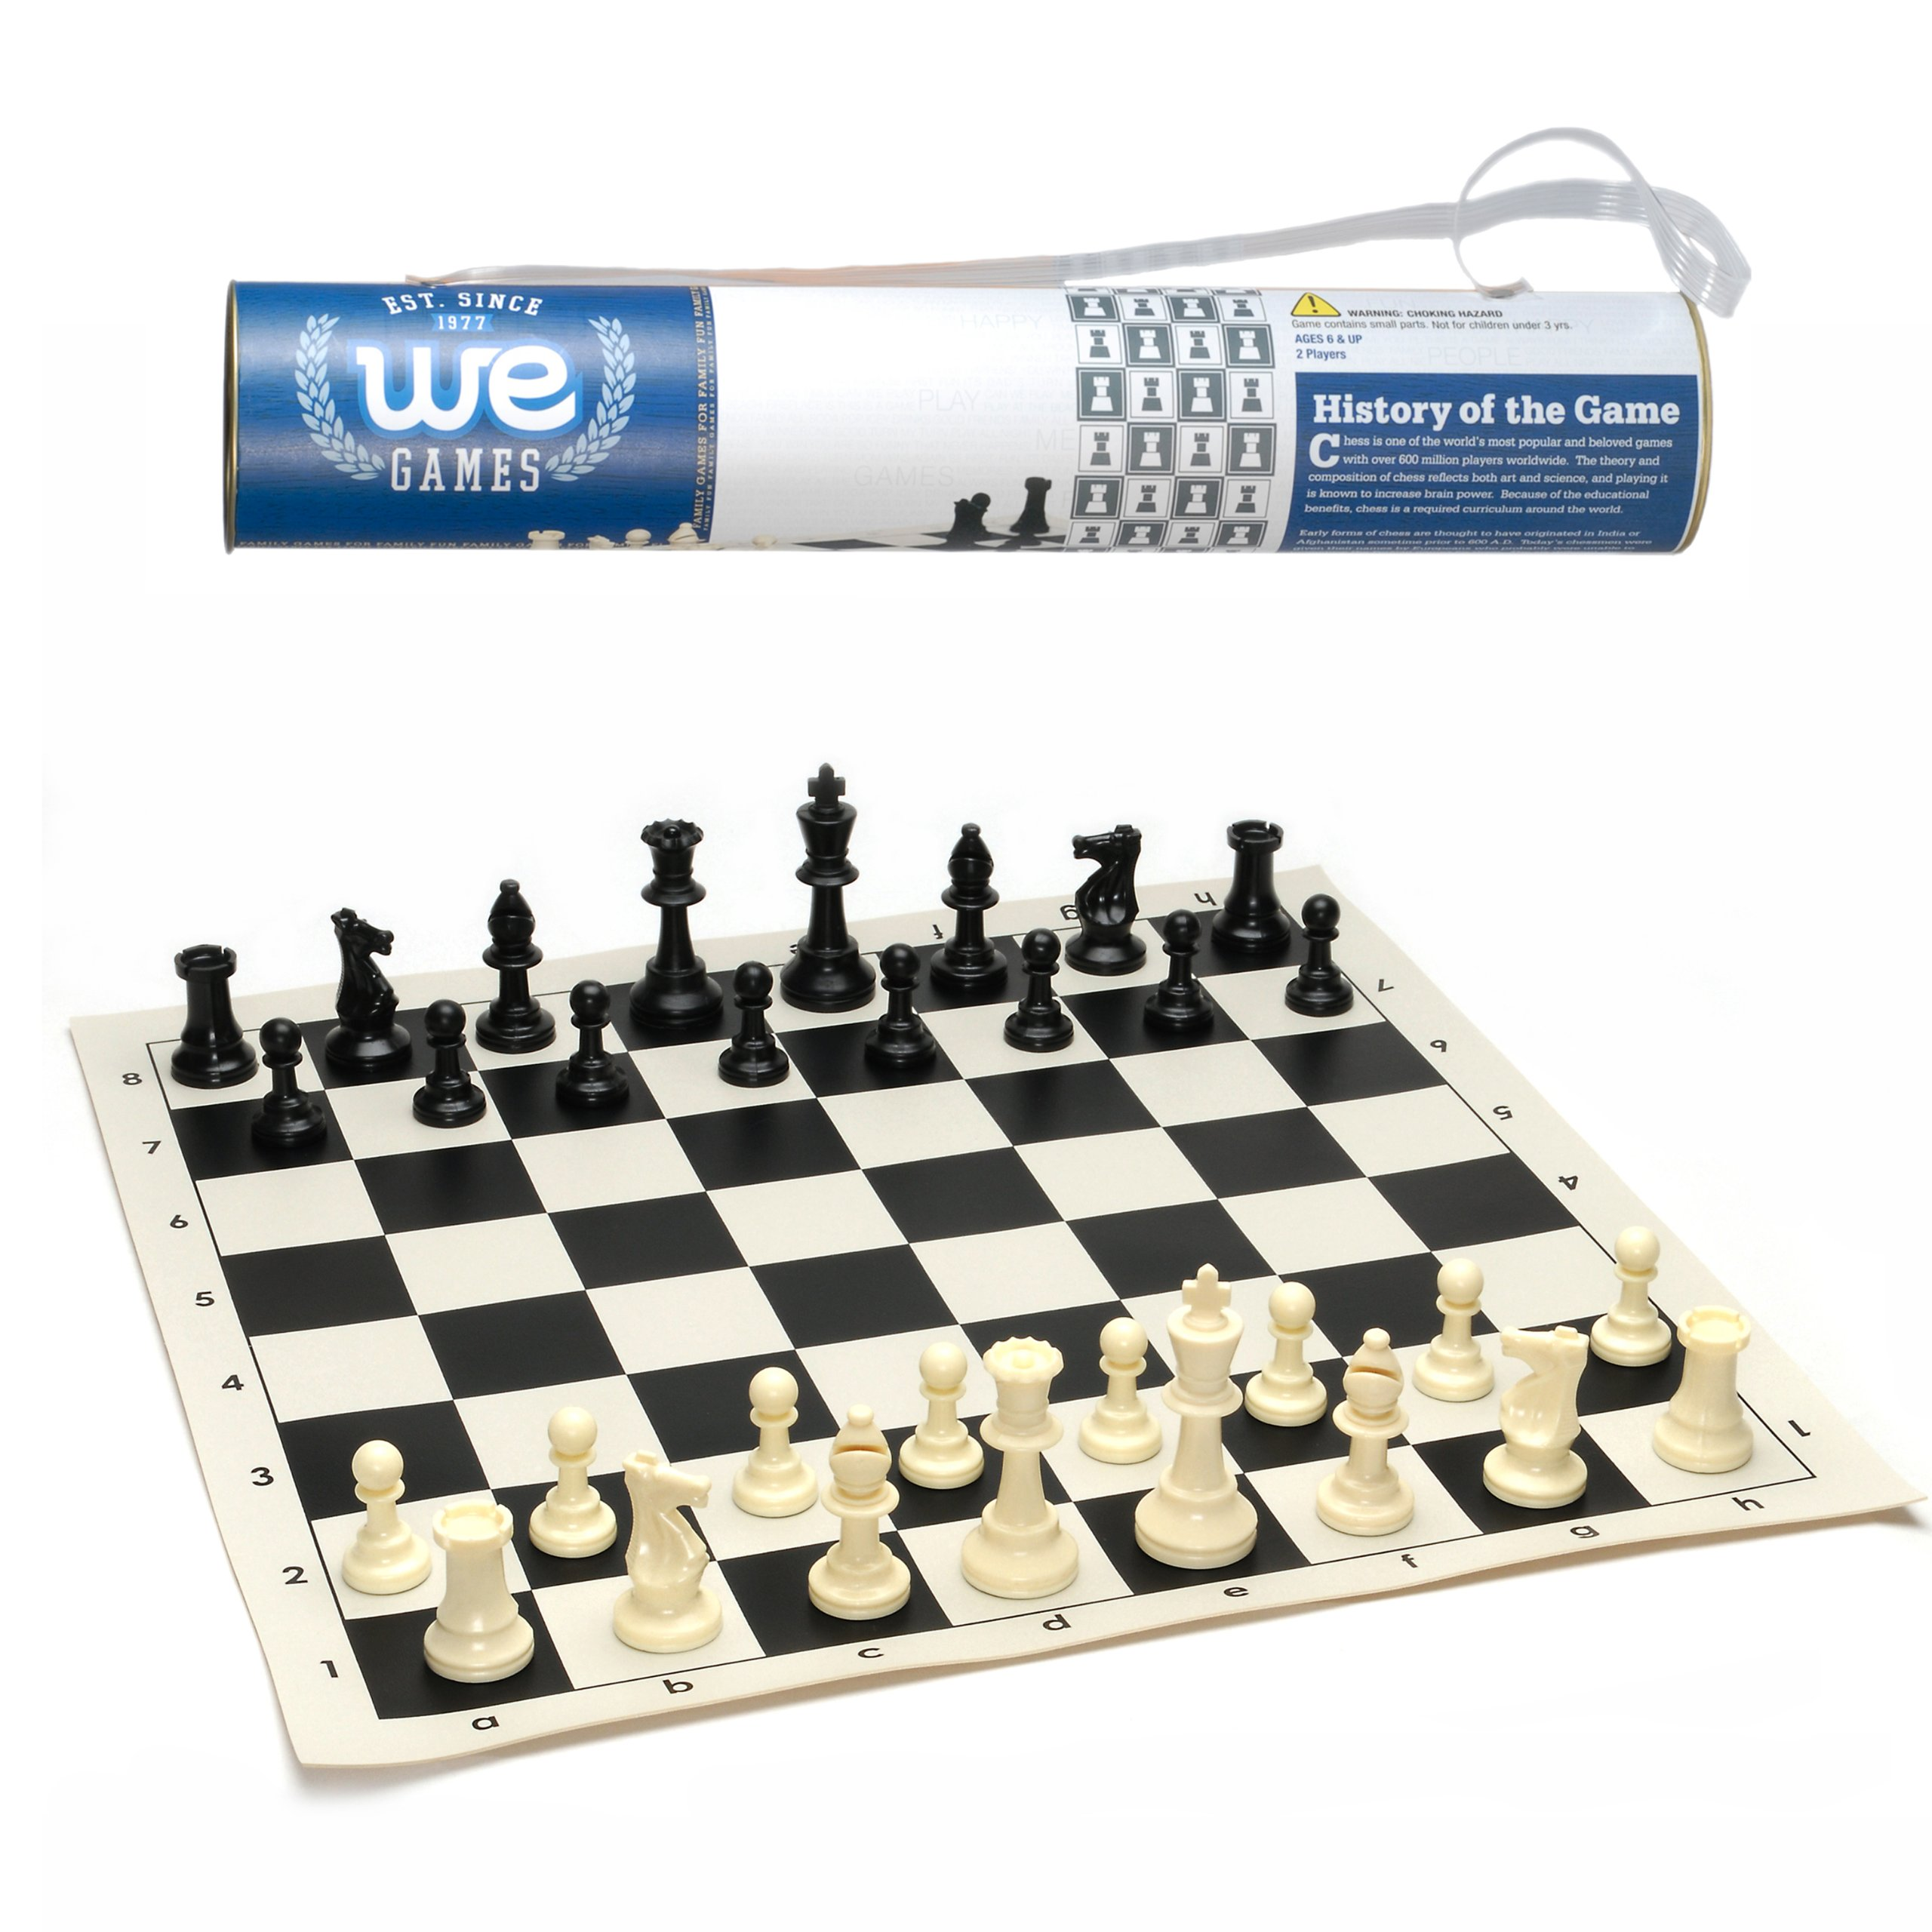 WE Games Roll-up Travel Chess Set in Carry Tube with Shoulder Strap - A Great Beginner Chess Set by WE Games